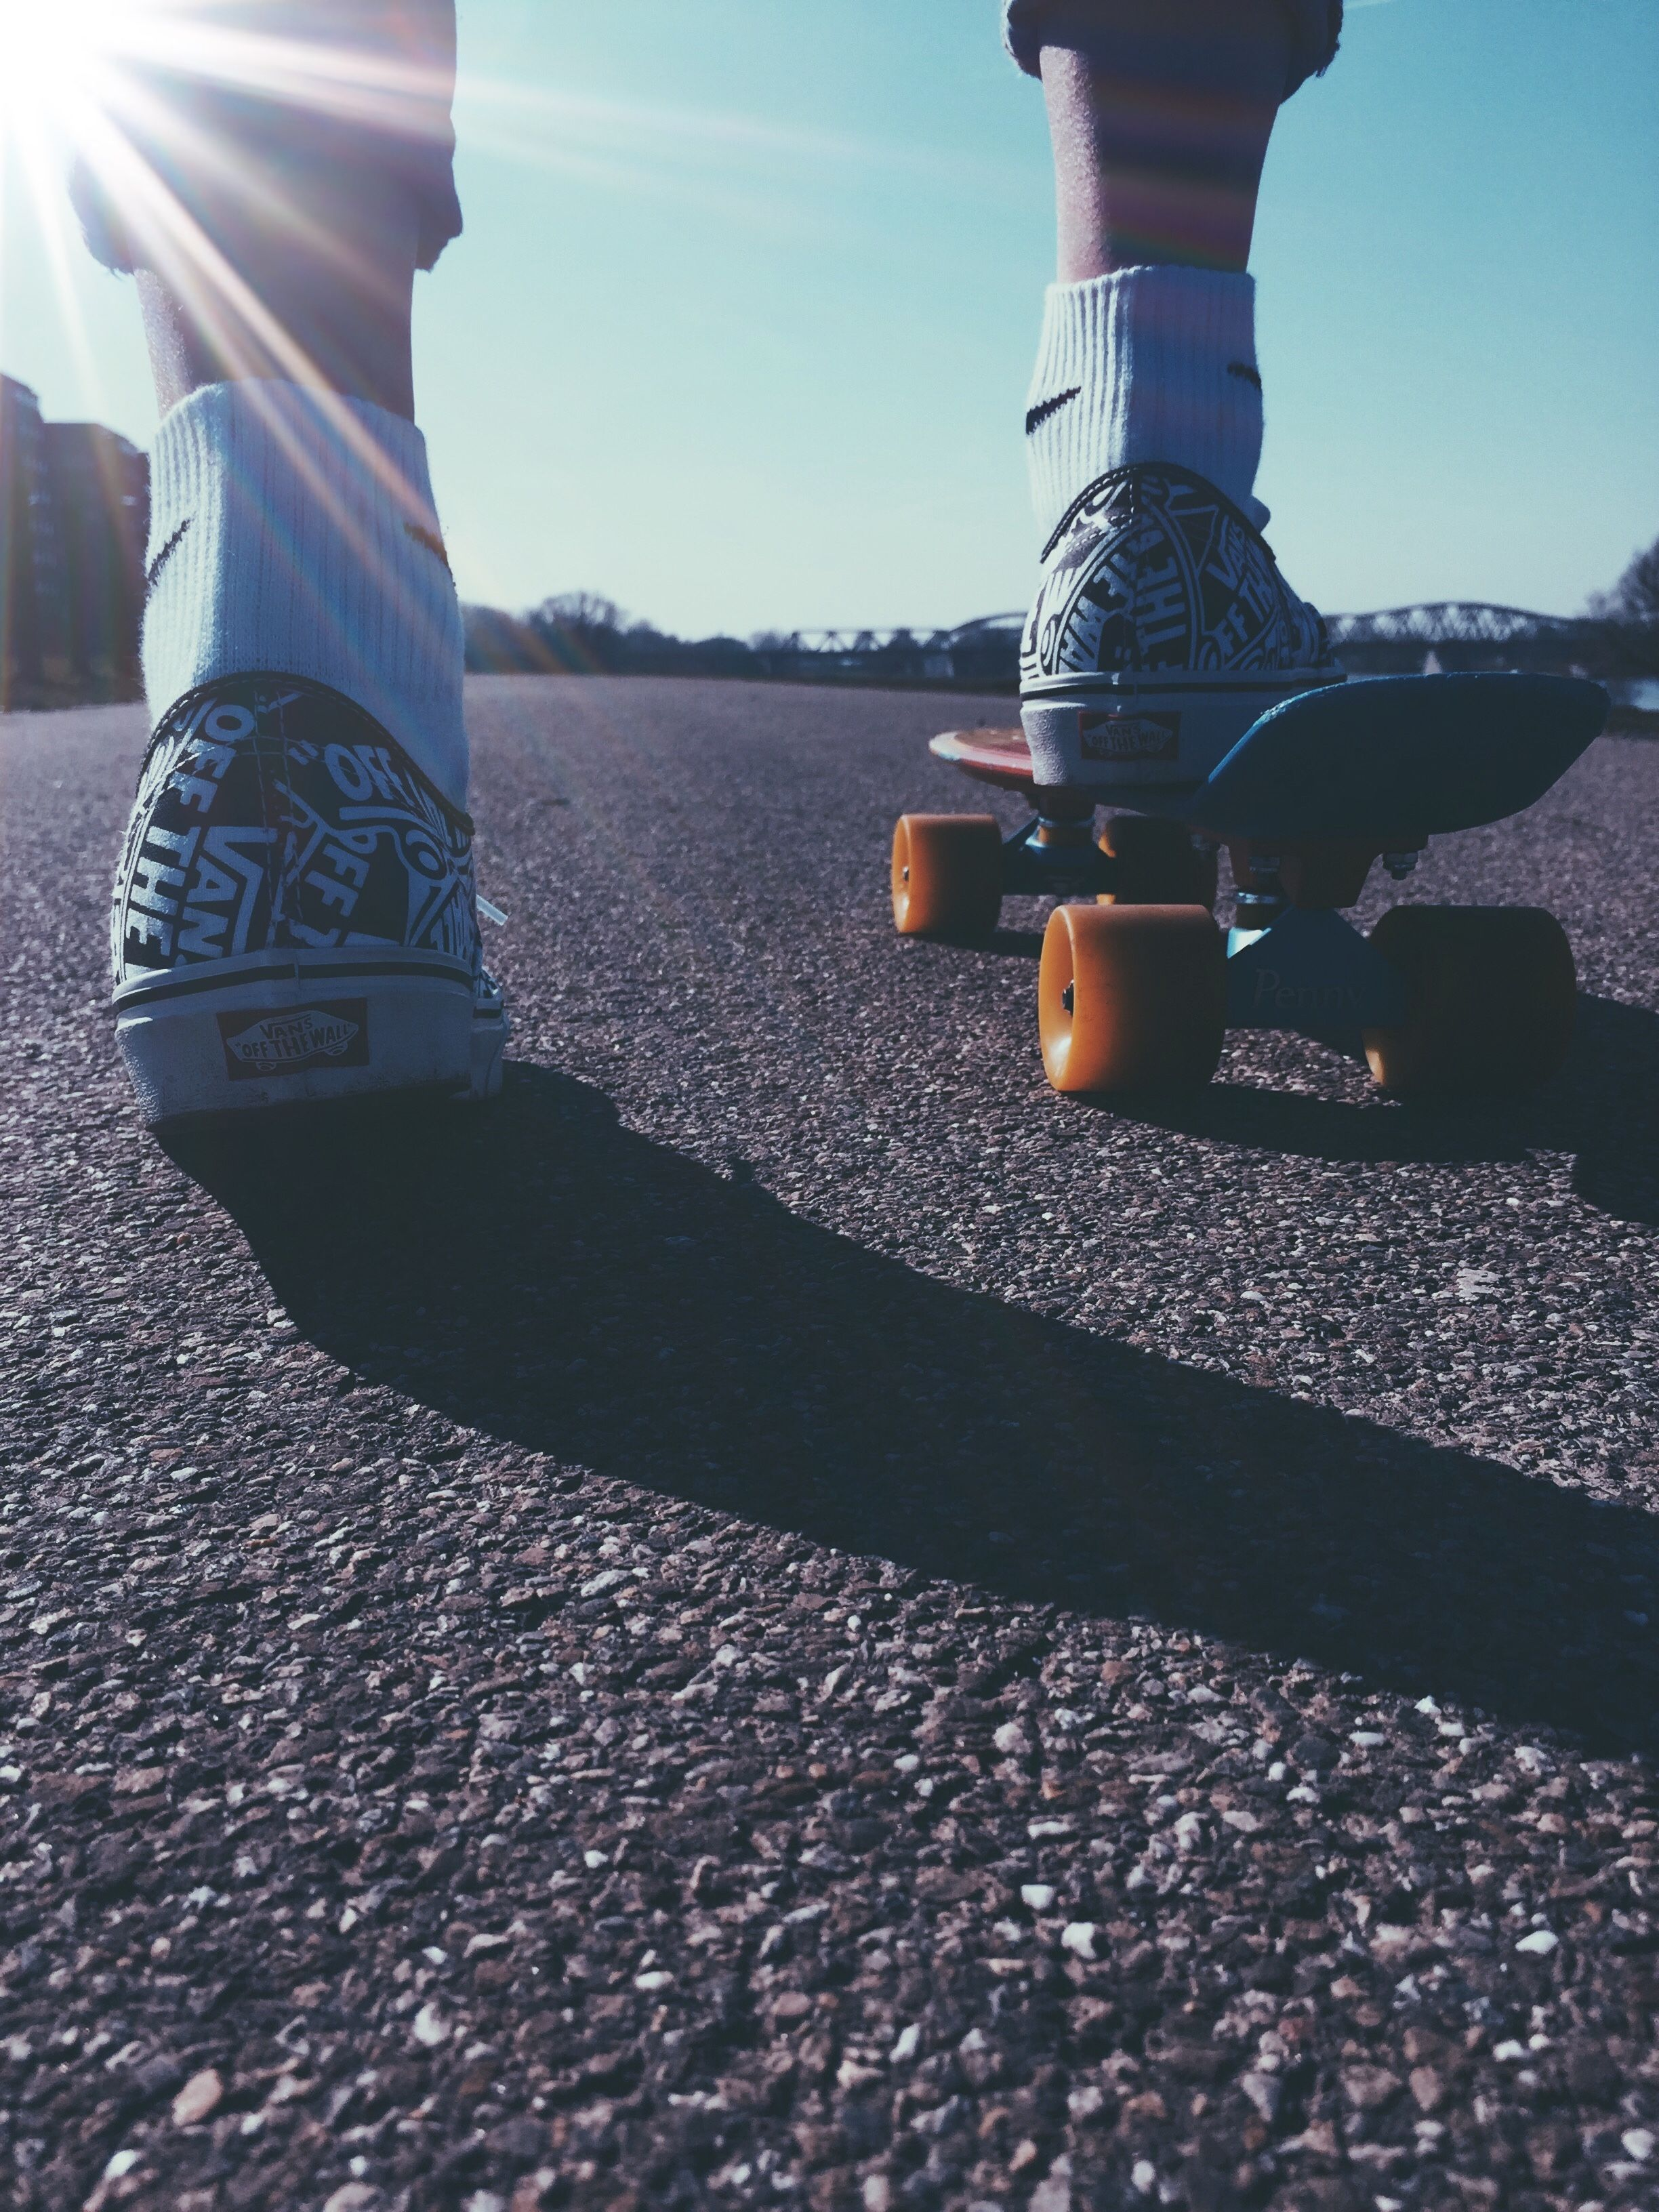 Vans Authentic With Penny Board Aesthetic Vans